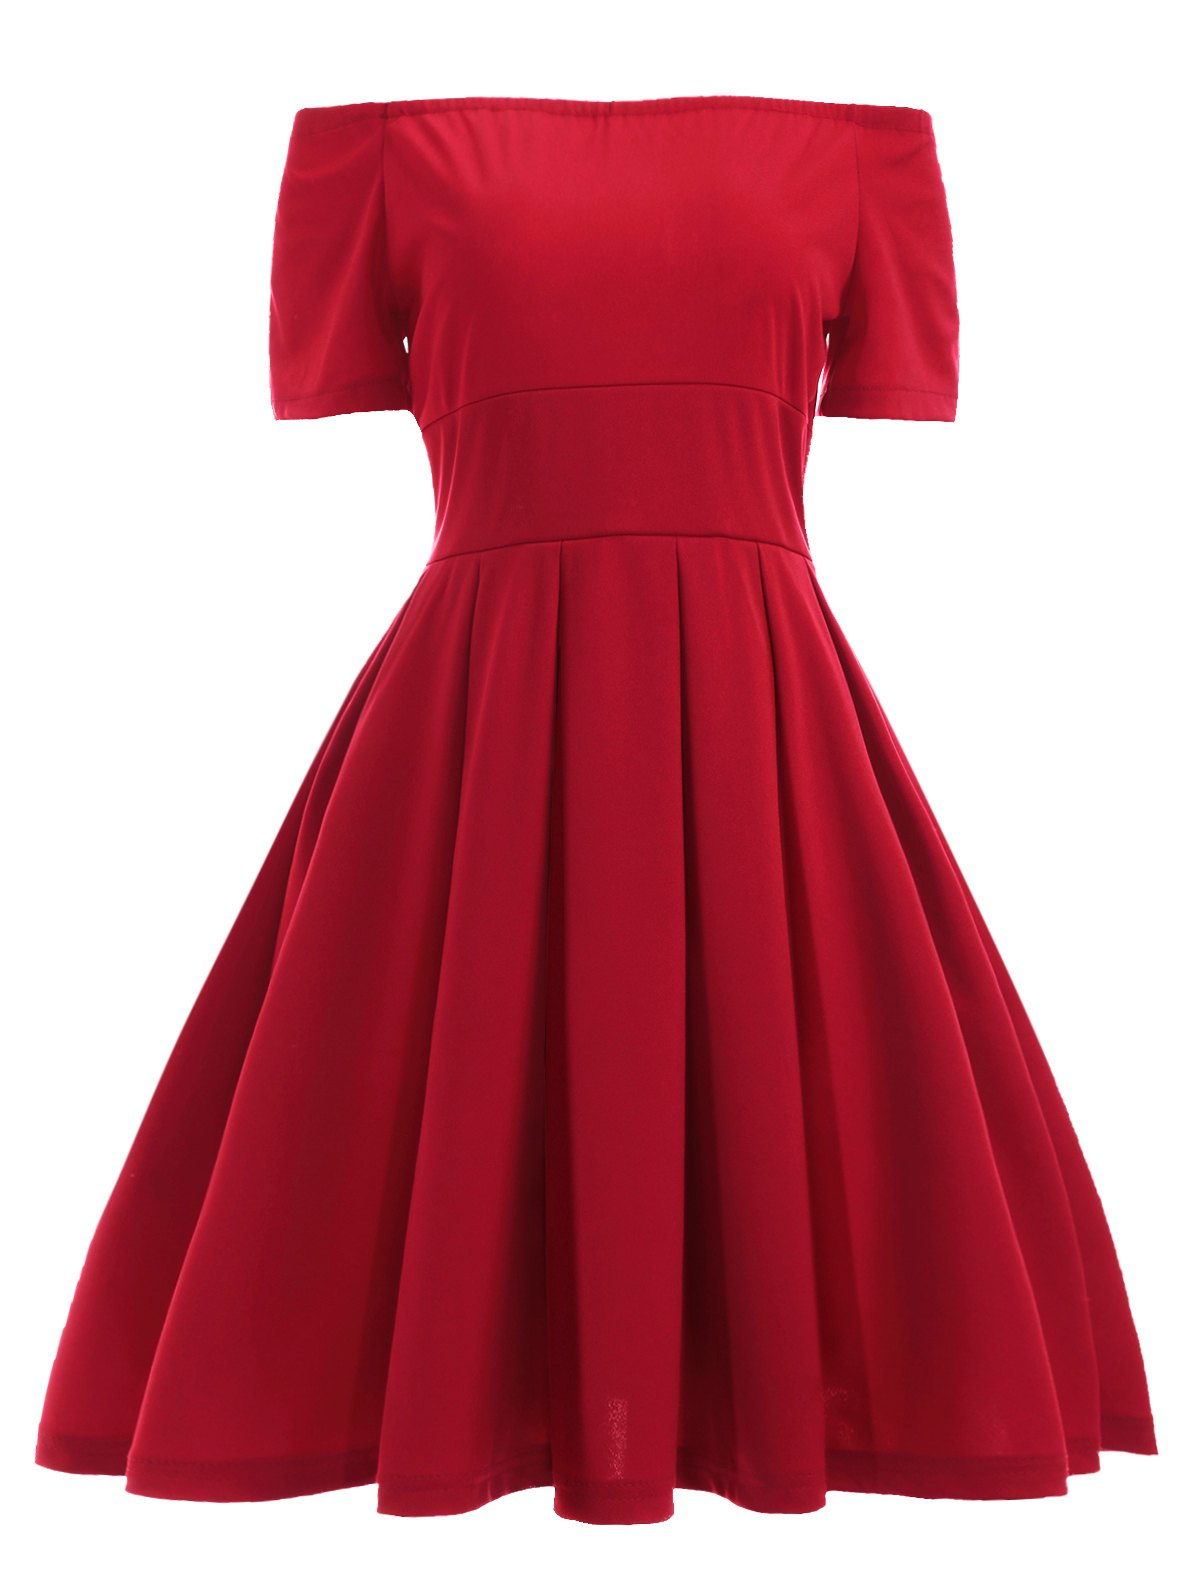 Vintage Off The Shoulder Convertible Red Pleated Dress